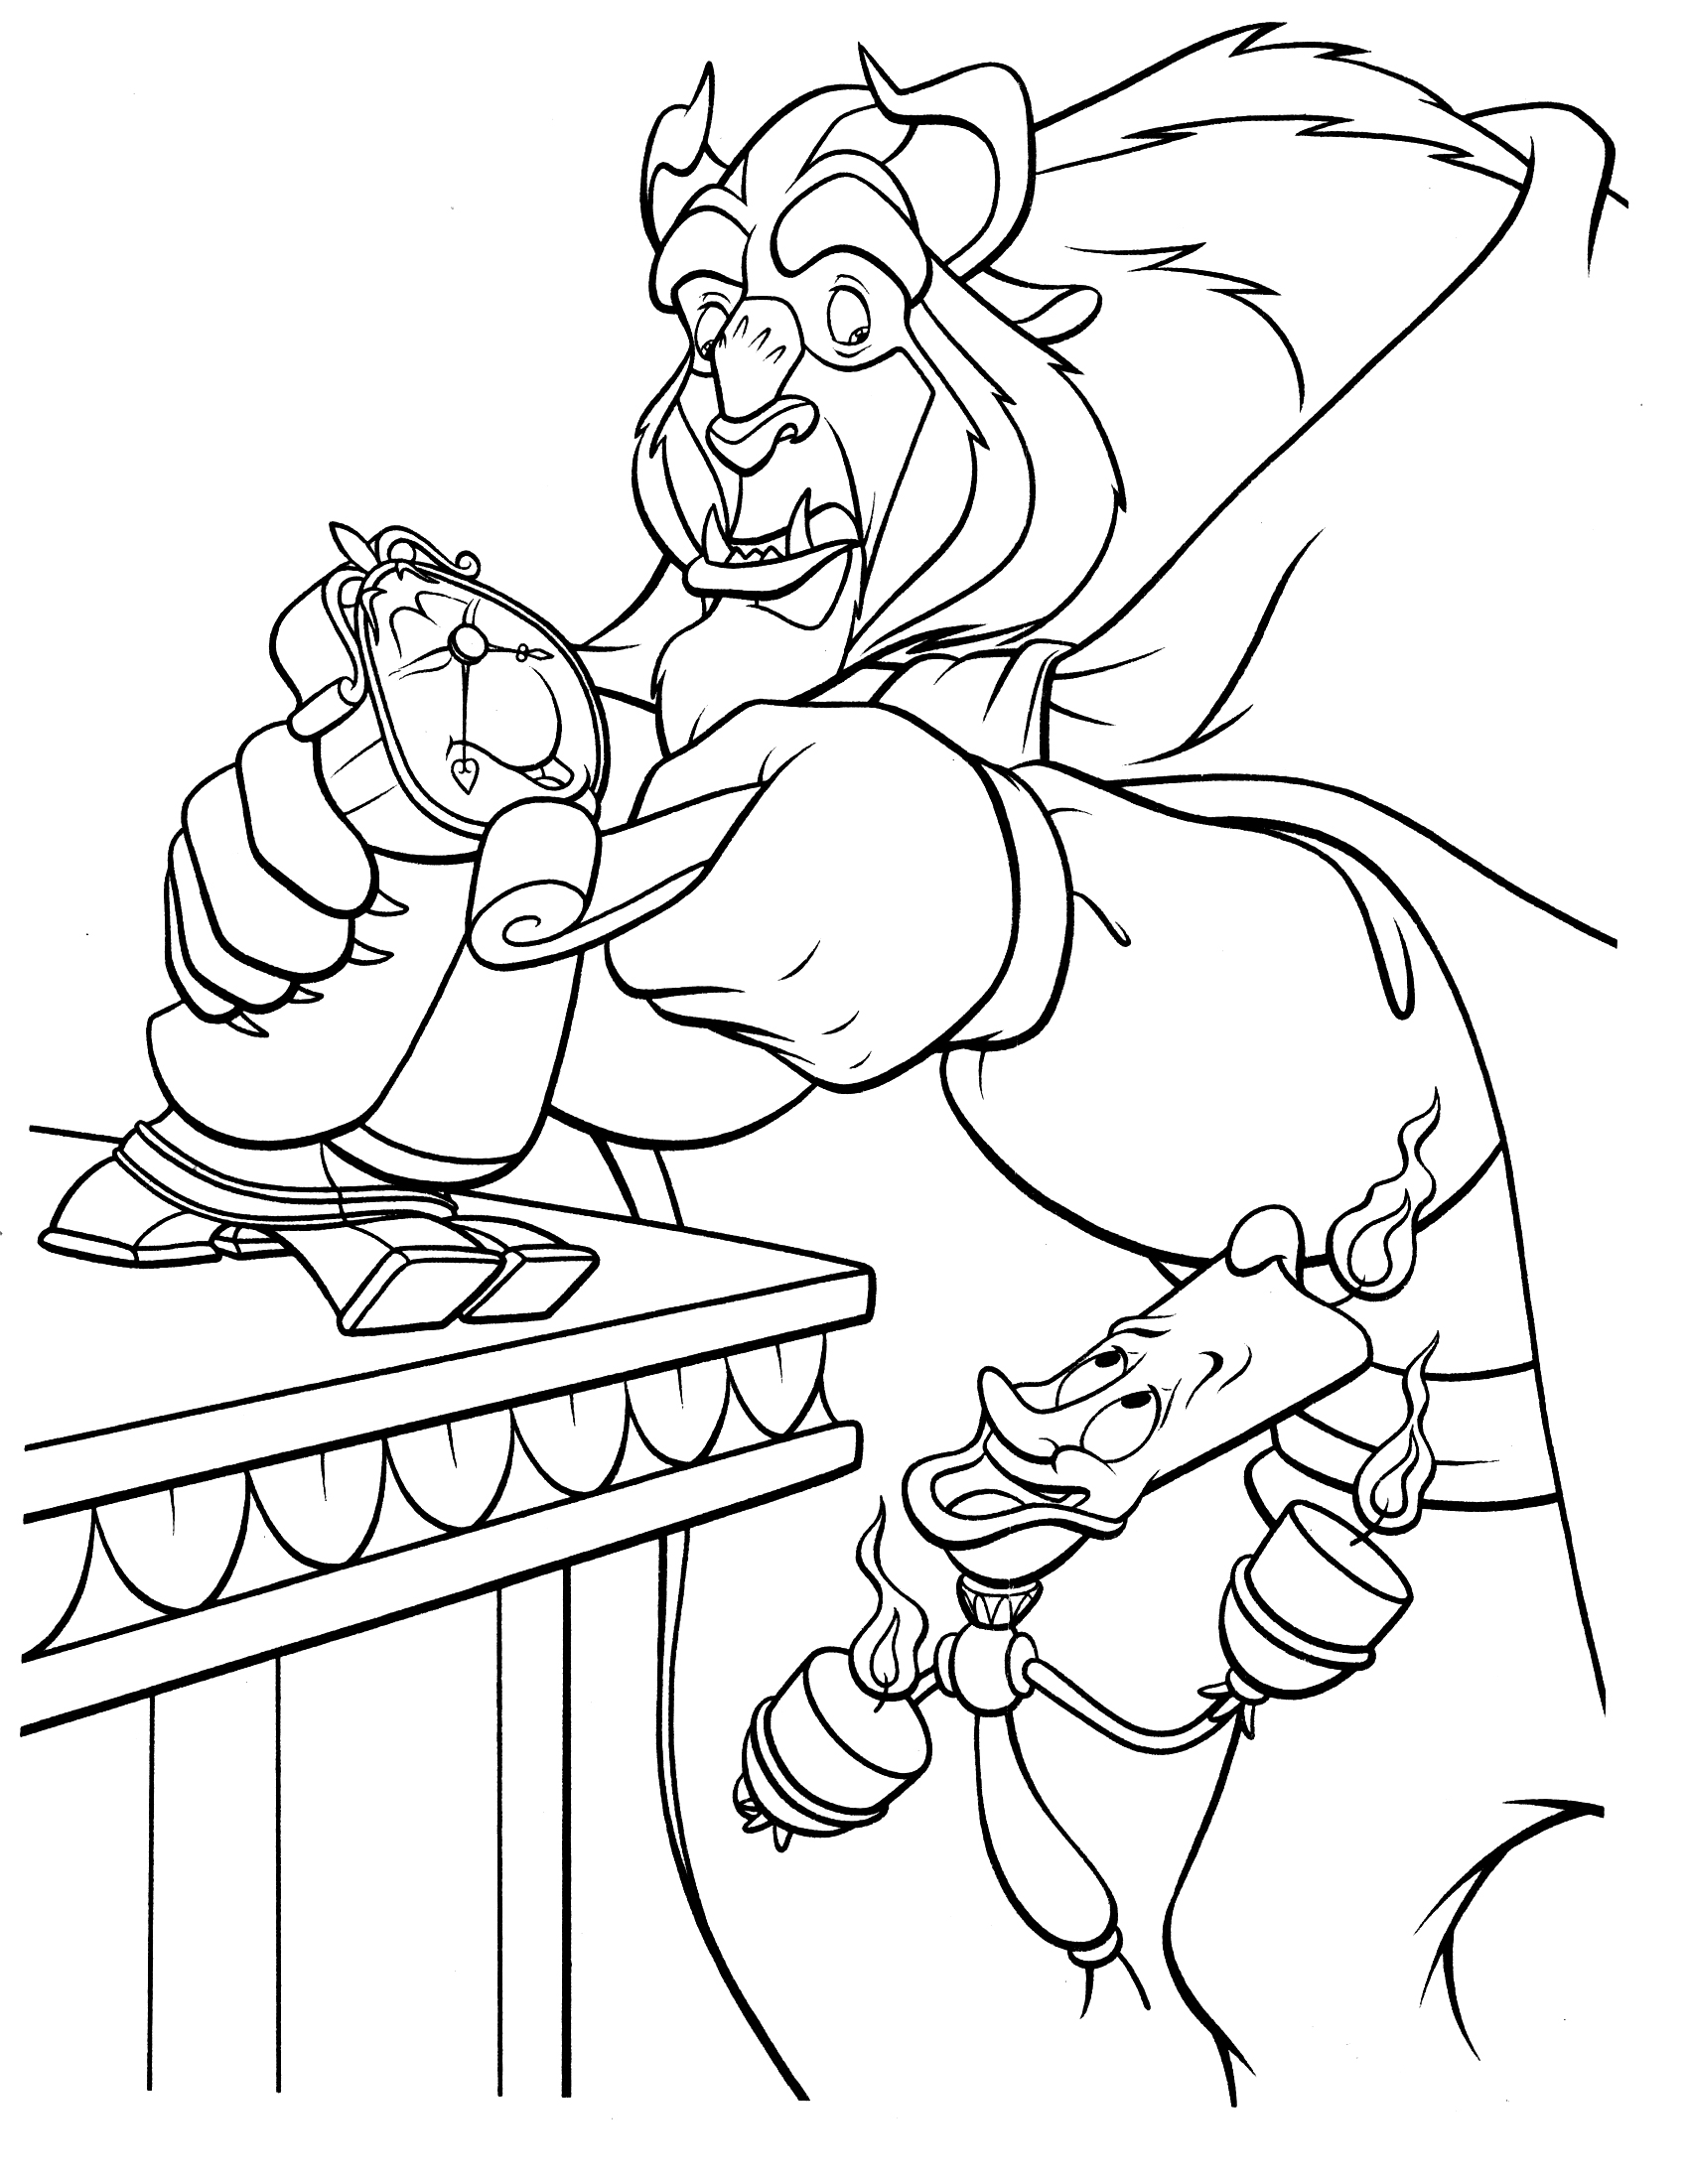 coloring pages beauty and the beast beauty and the beast coloring pages print and colorcom and the pages coloring beauty beast